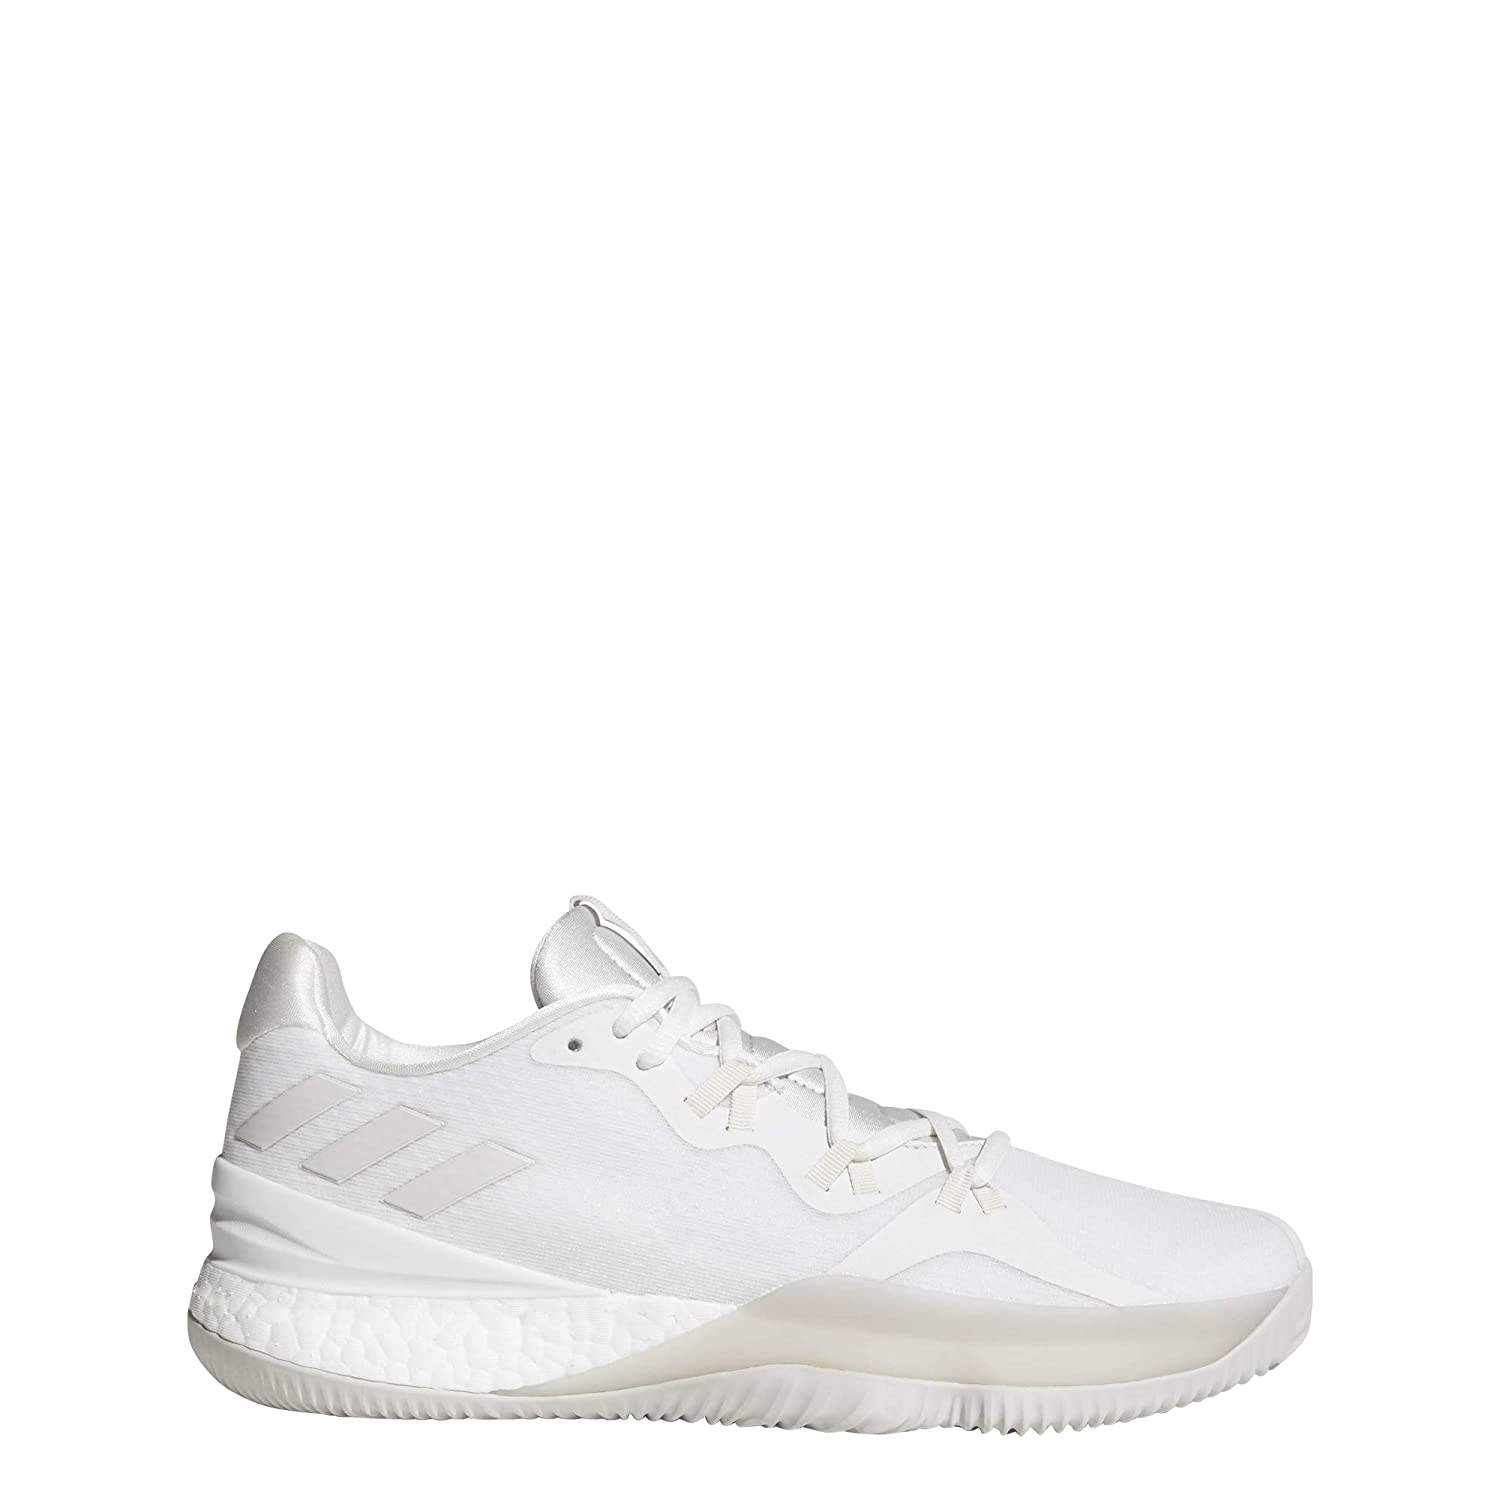 newest 2bee0 0f9e0 Amazon.com adidas Crazylight Boost 2018 - DB1072 - Color White - Size  8.0 Shoes